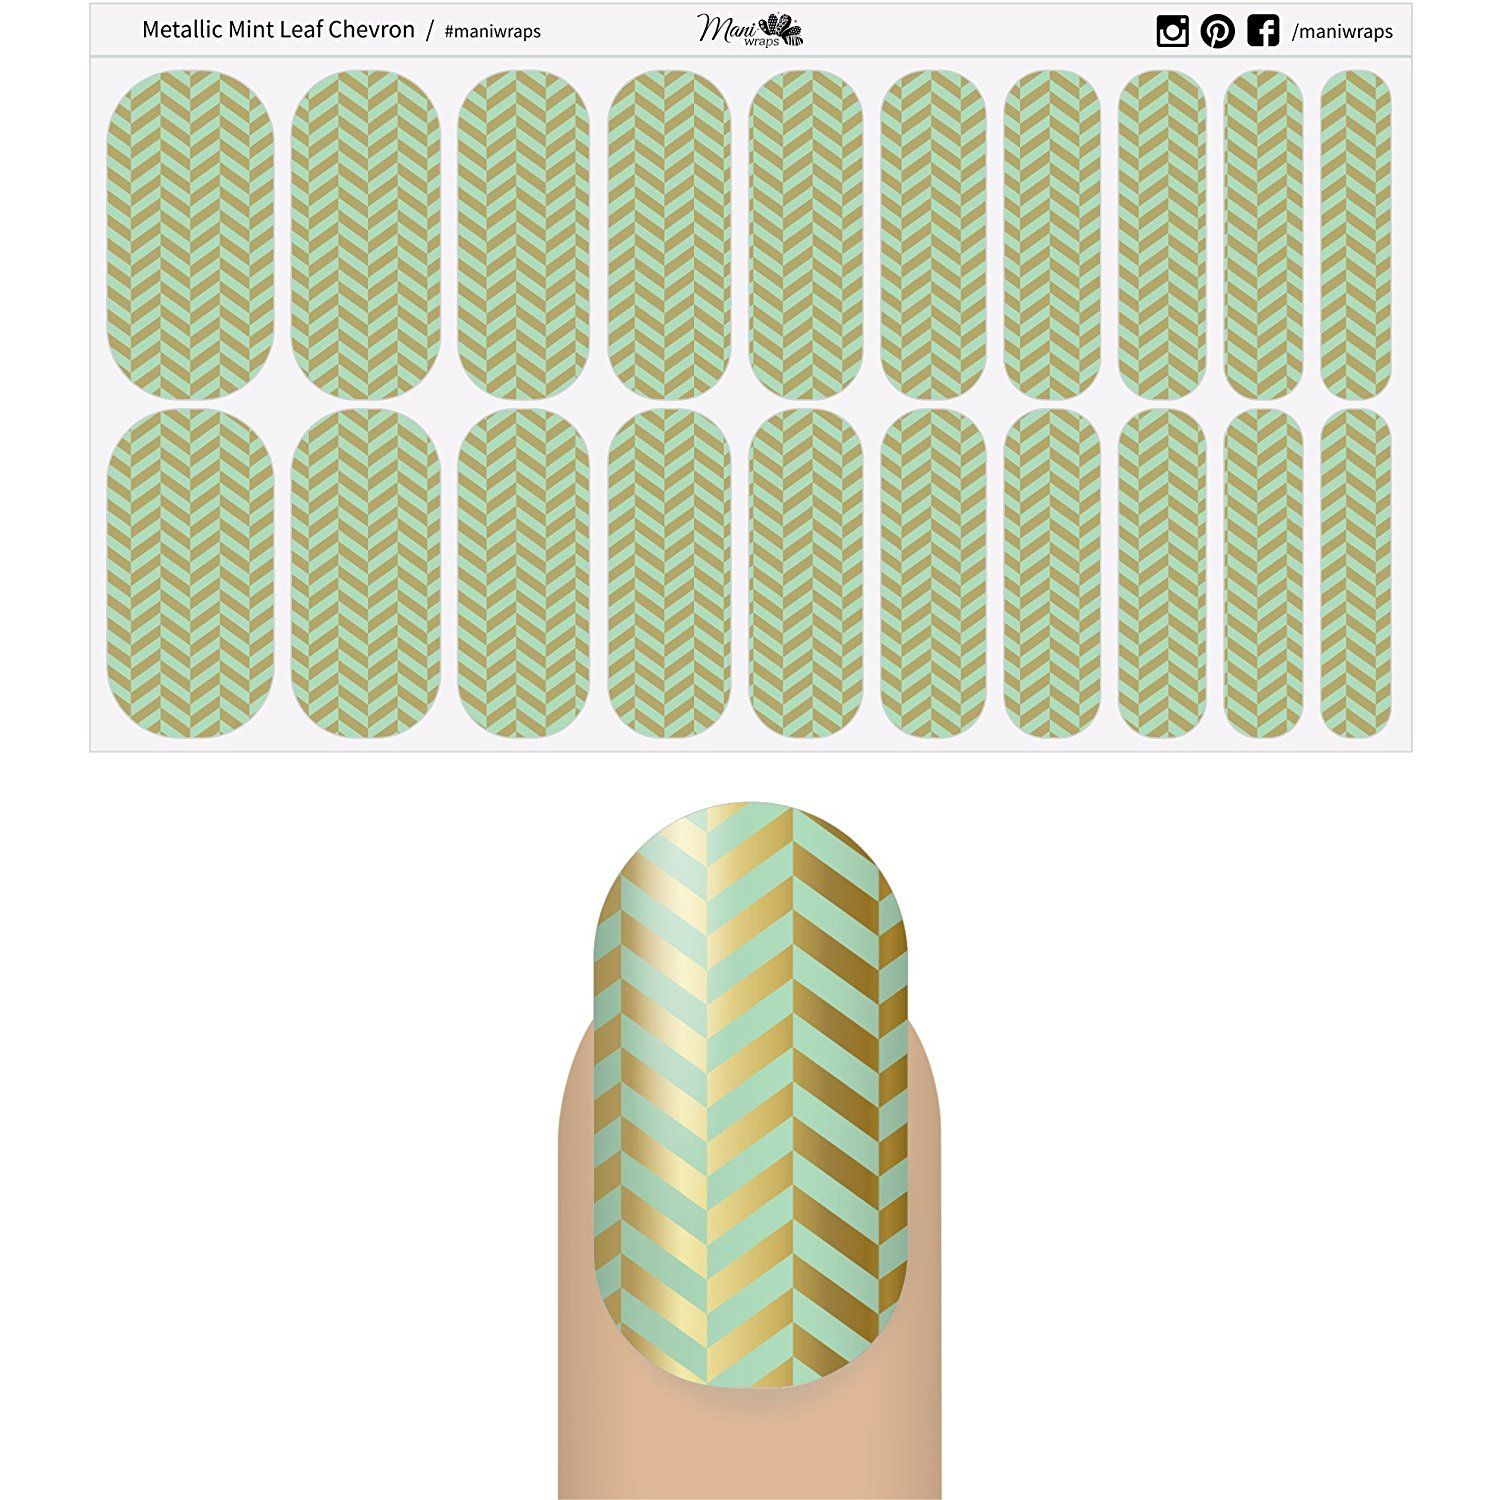 Mani Wraps Salon Quality Nail Wraps äóñ Metallic Mint (Metallic Gold and Mint Green Leaf Chevron Pattern) >>> To view further for this item, visit the image link.